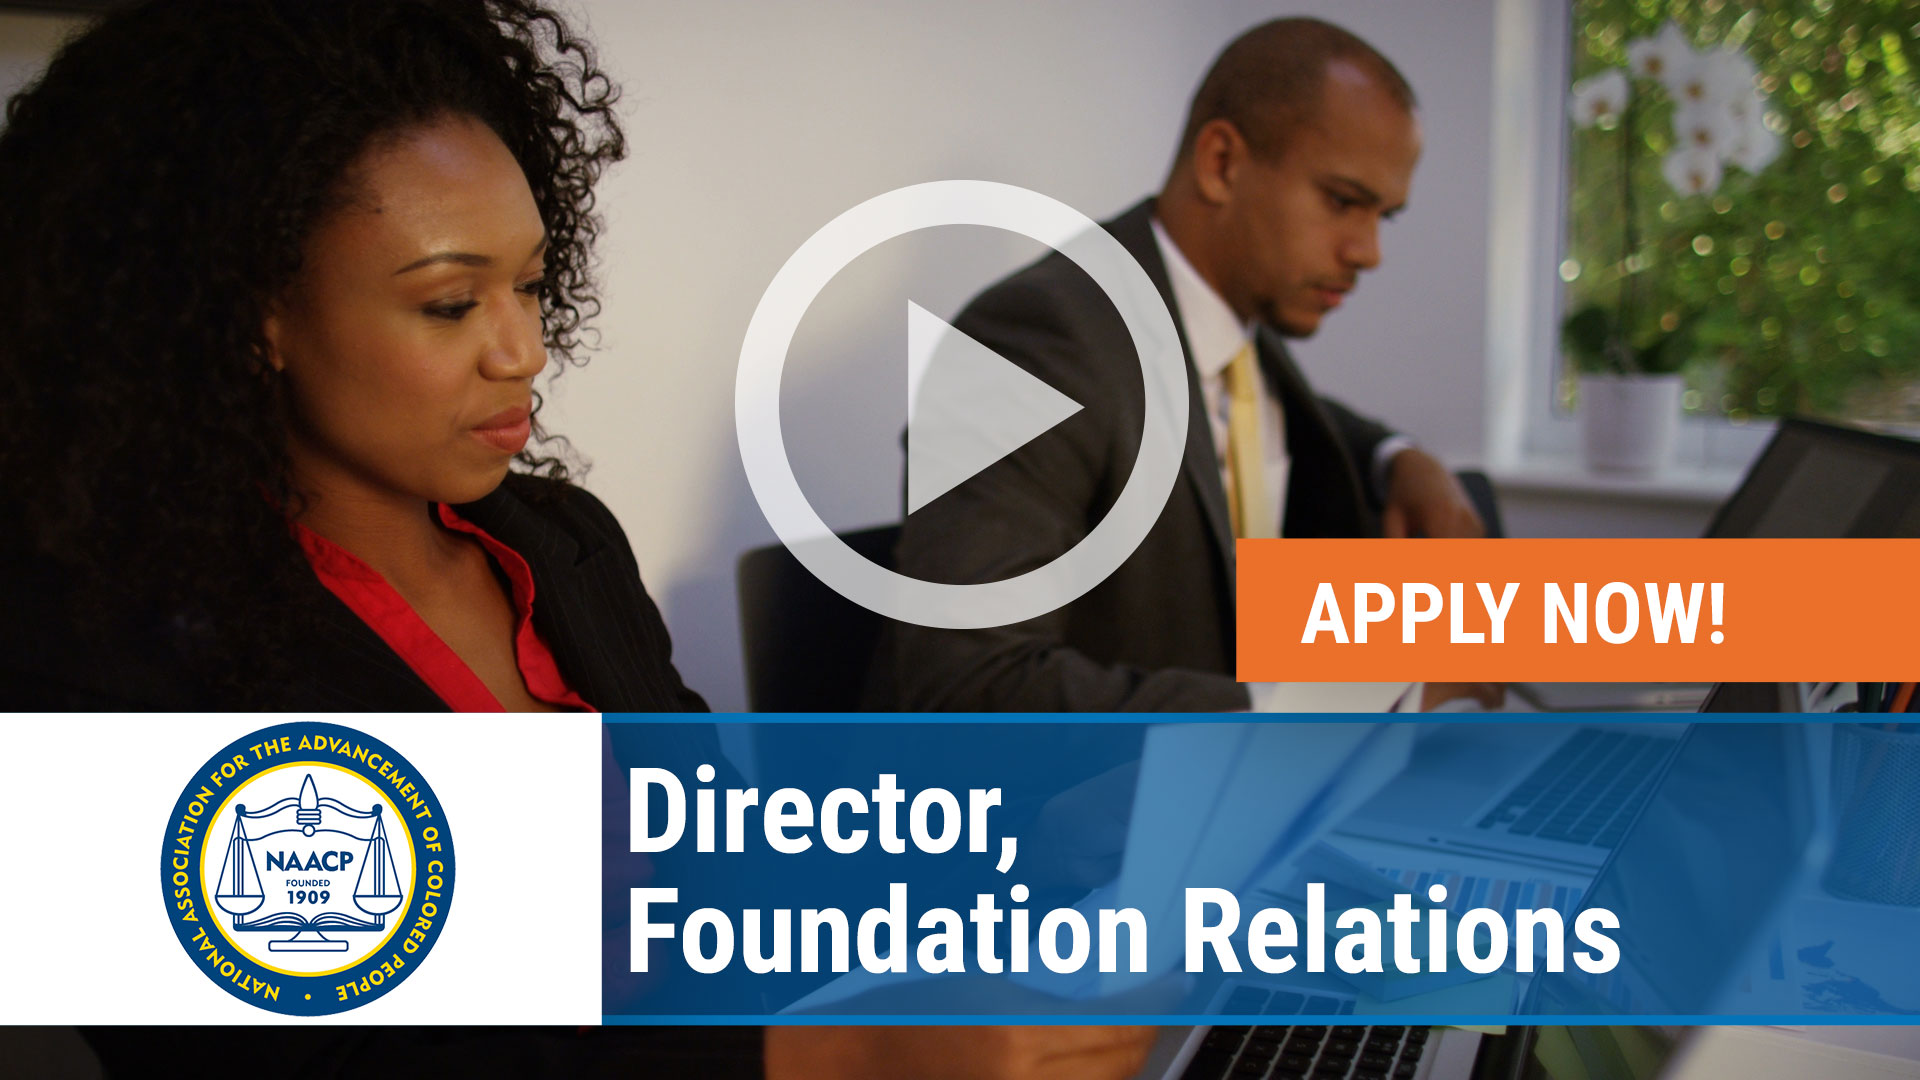 Watch our careers video for available job opening Director, Foundation Relations for the NAACP in Baltimore, Maryland